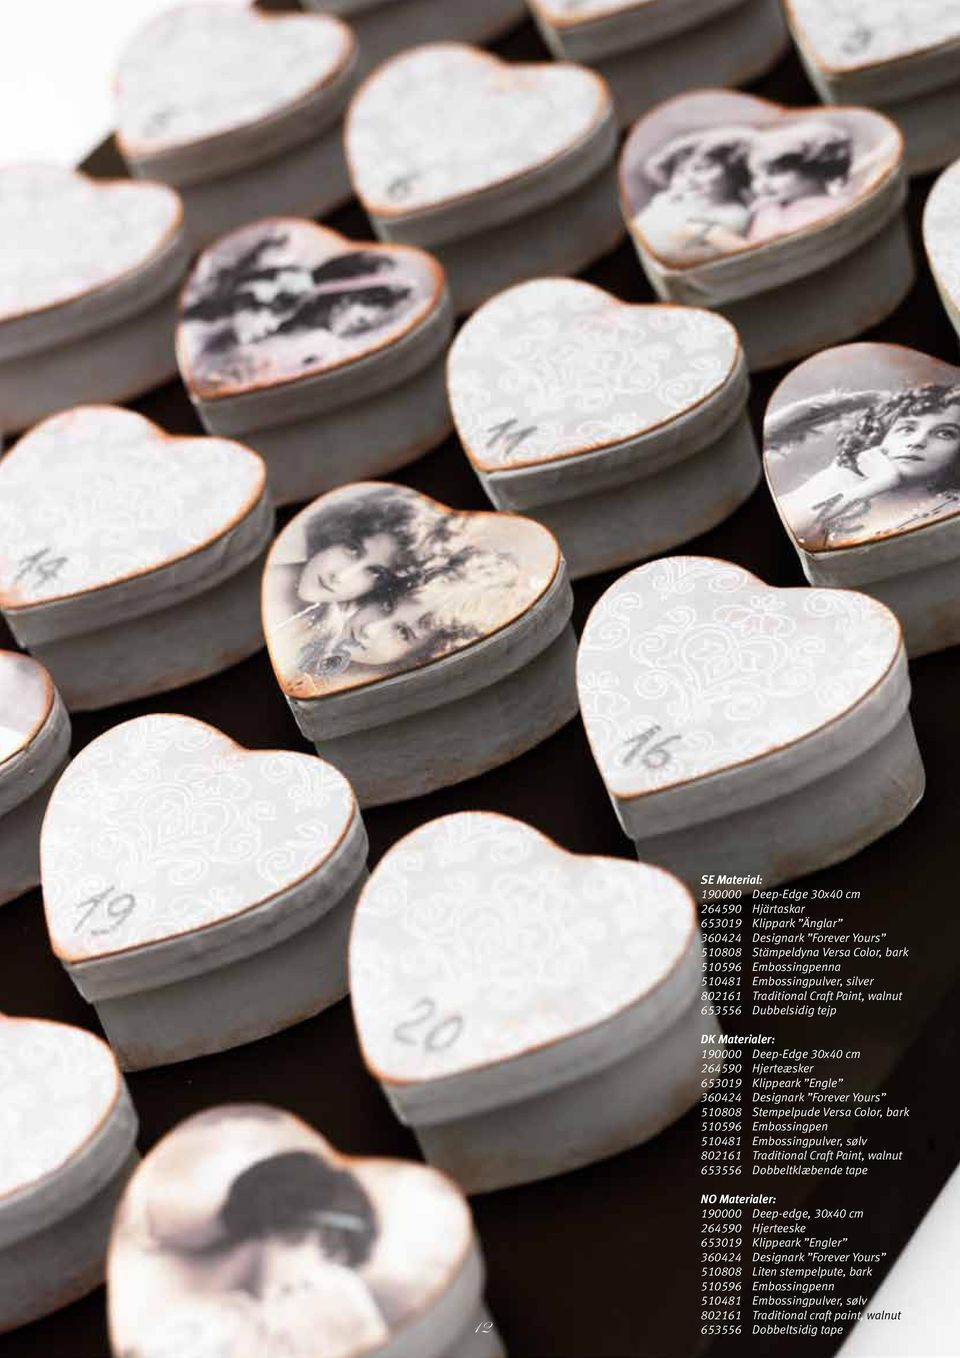 510808 Stempelpude Versa Color, bark 510596 Embossingpen 510481 Embossingpulver, sølv 802161 Traditional Craft Paint, walnut 653556 Dobbeltklæbende tape 12 NO 190000 Deep-edge, 30x40 cm 264590